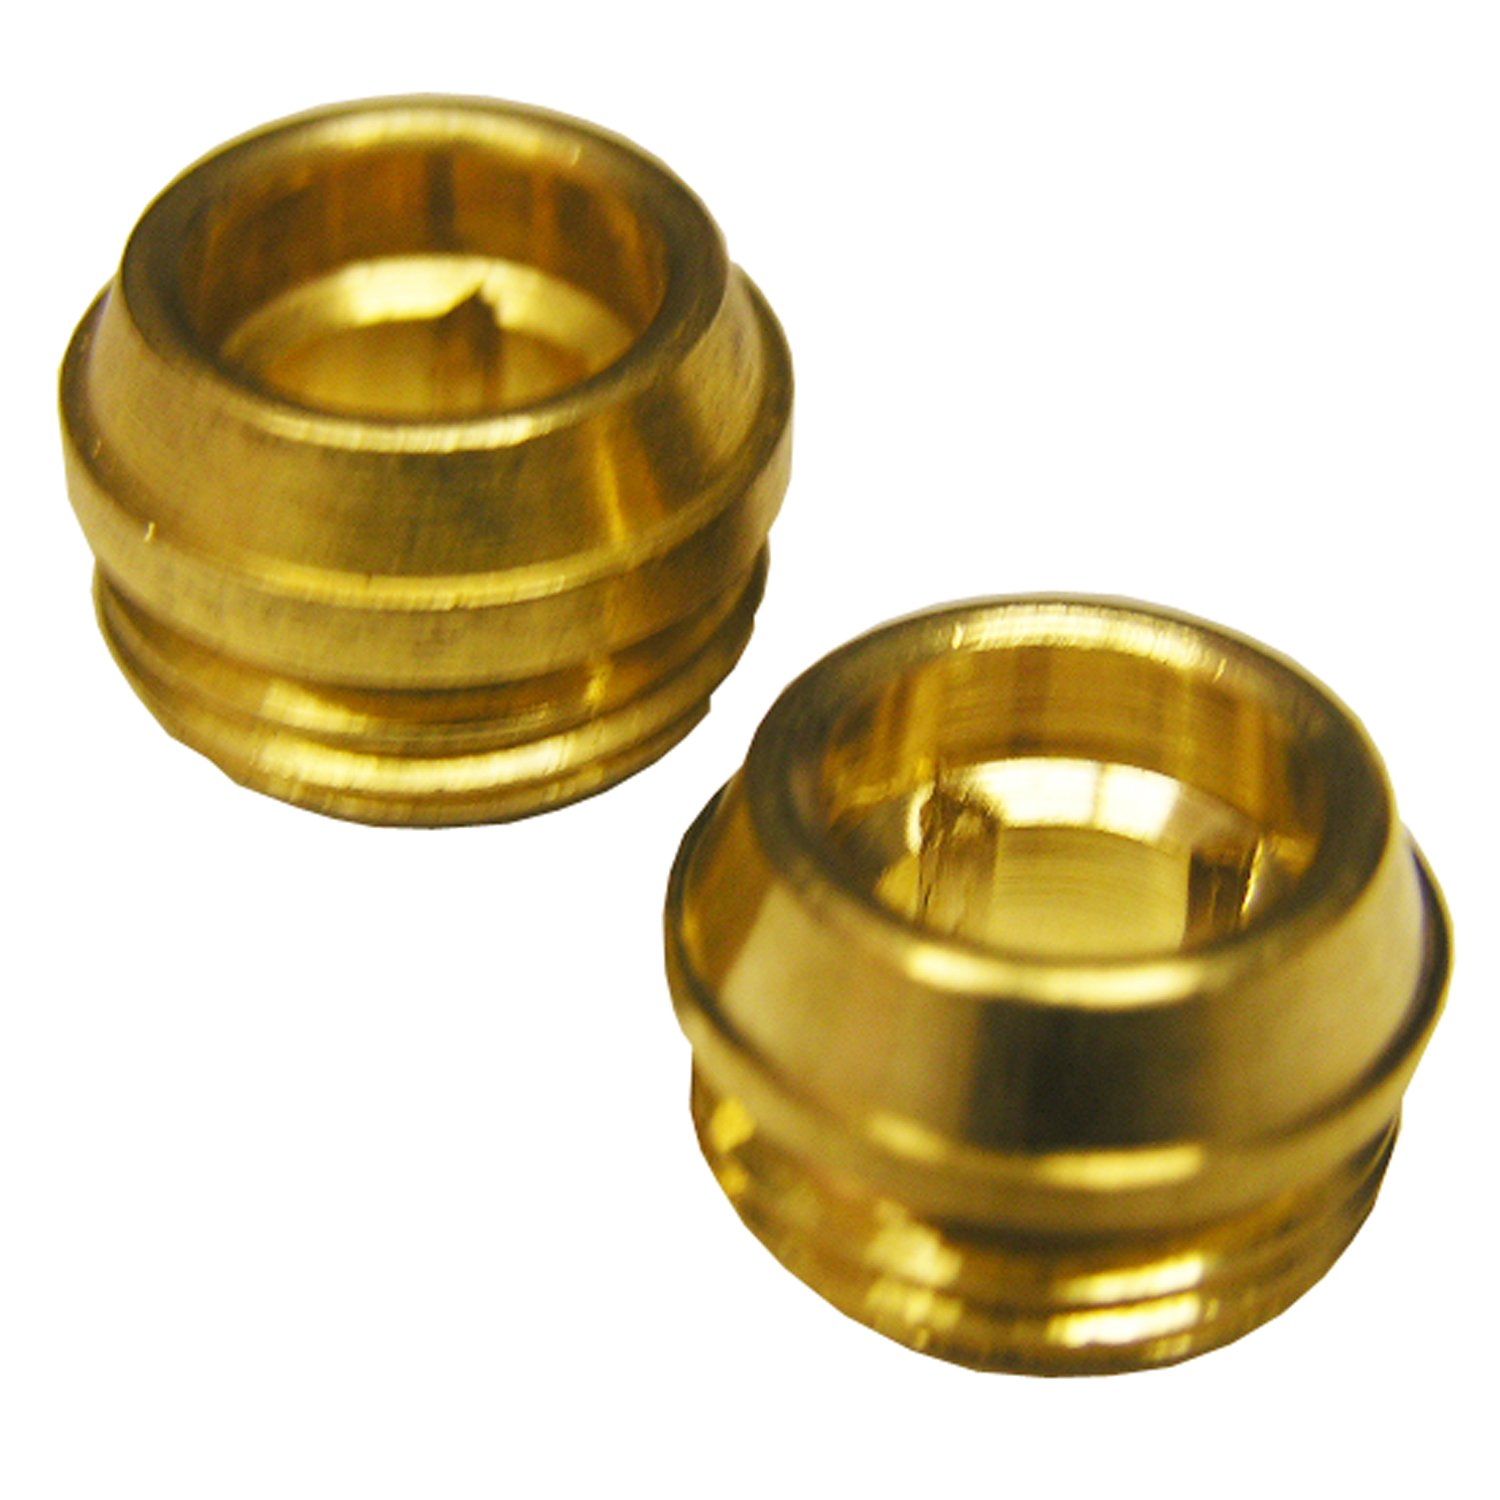 LASCO SB-61NL No Lead 5/8 by 20 by 27/64 Brass Faucet Seats Fits Gerber Brand, 2-Pack